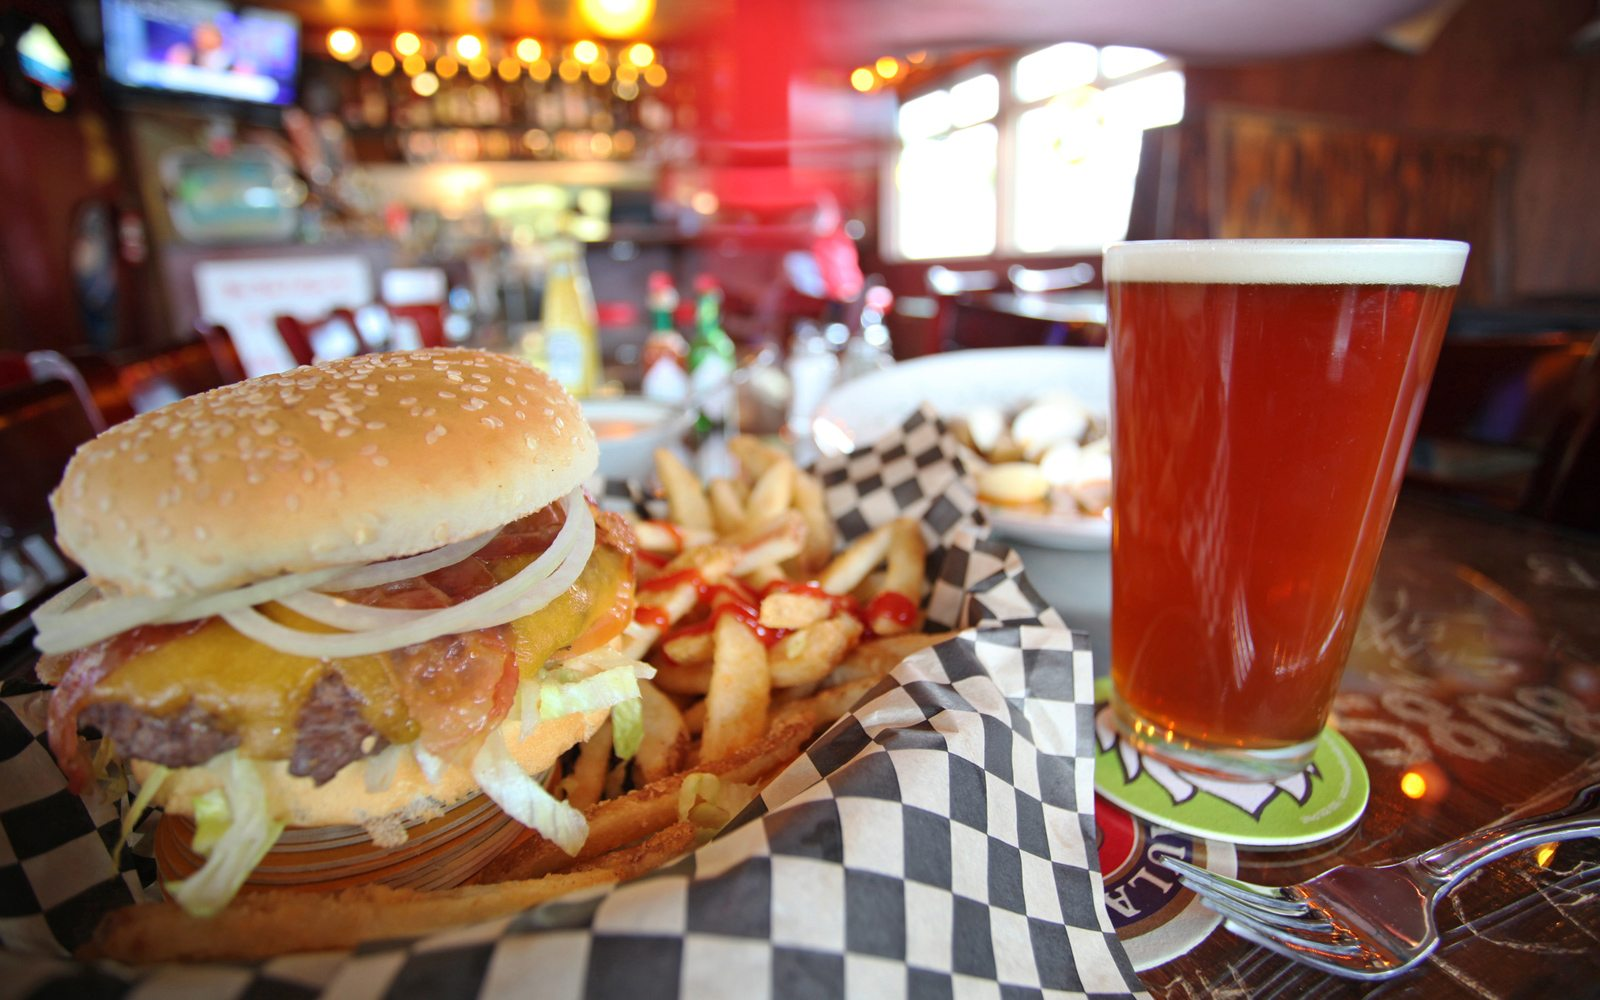 Burgers and a beer at U Street Pub & Eatery